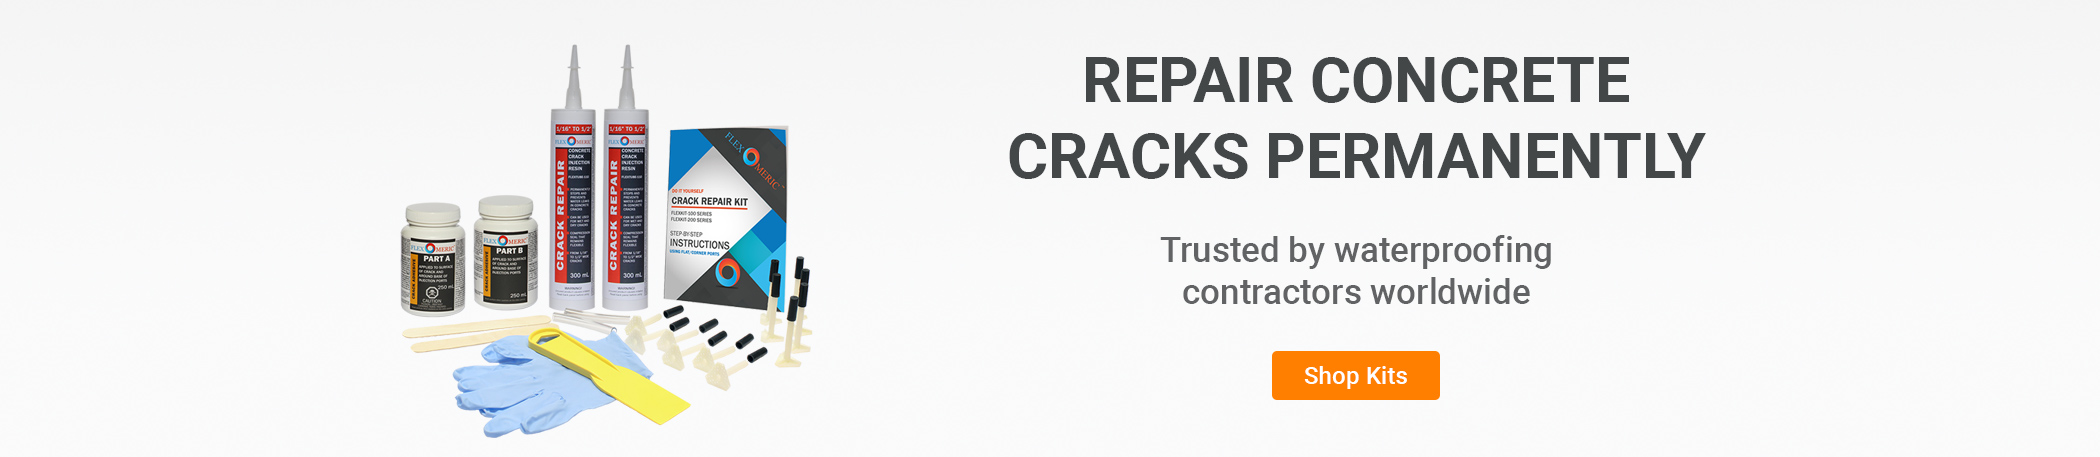 Do it yourself foundation crack repair kits solutioingenieria Image collections